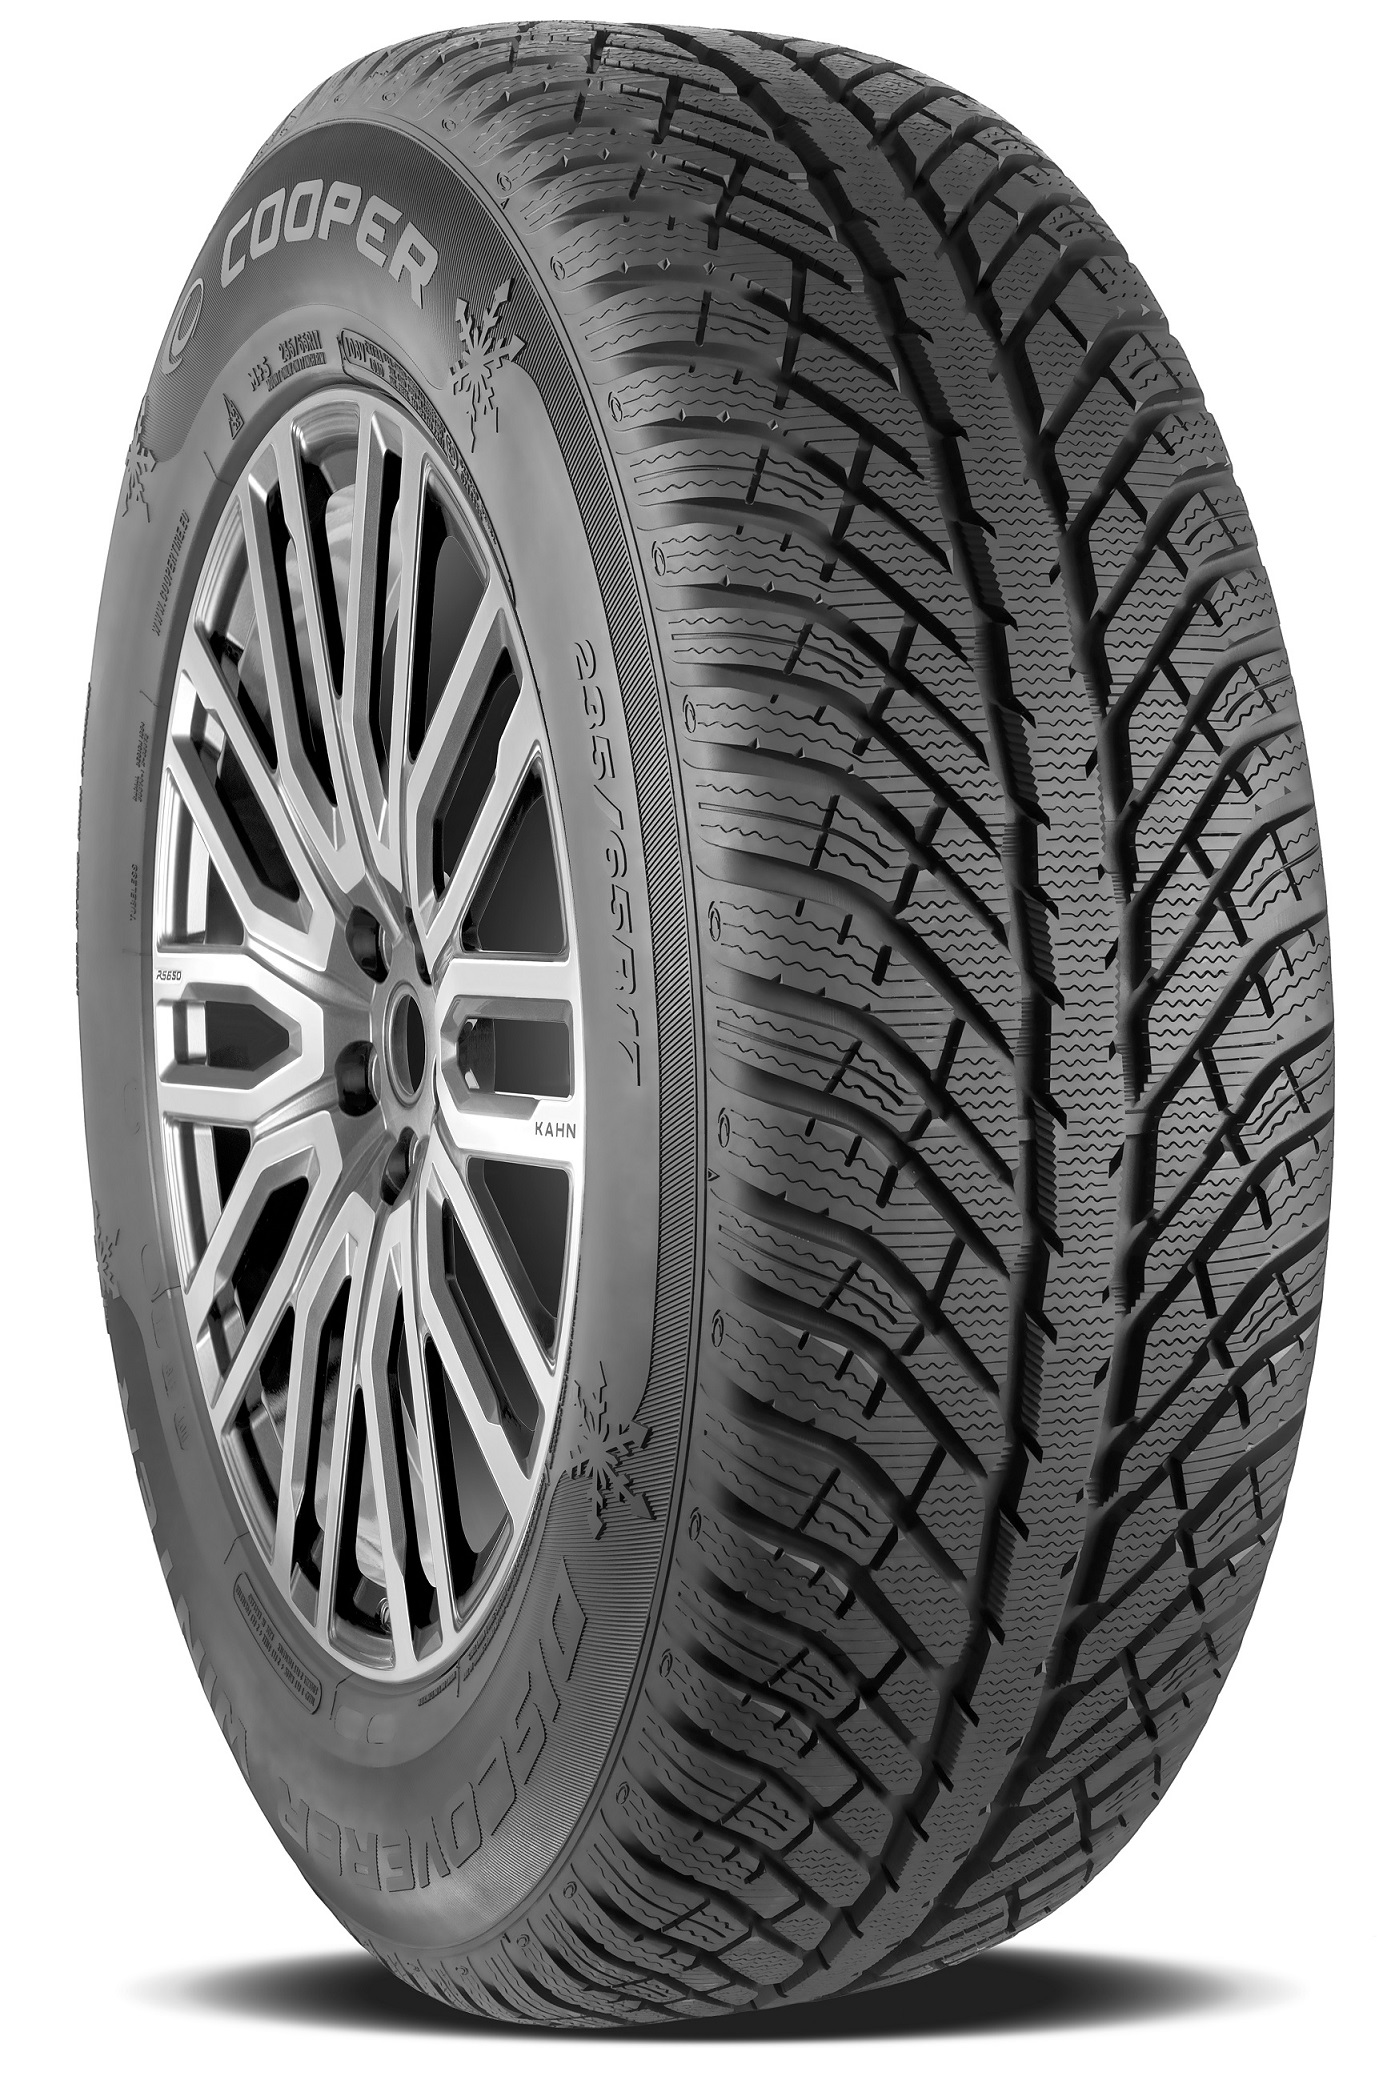 Cooper Tyres Cooper Tyres 215/65 R16 102H DISCOVERER WINTER XL pneumatici nuovi Invernale